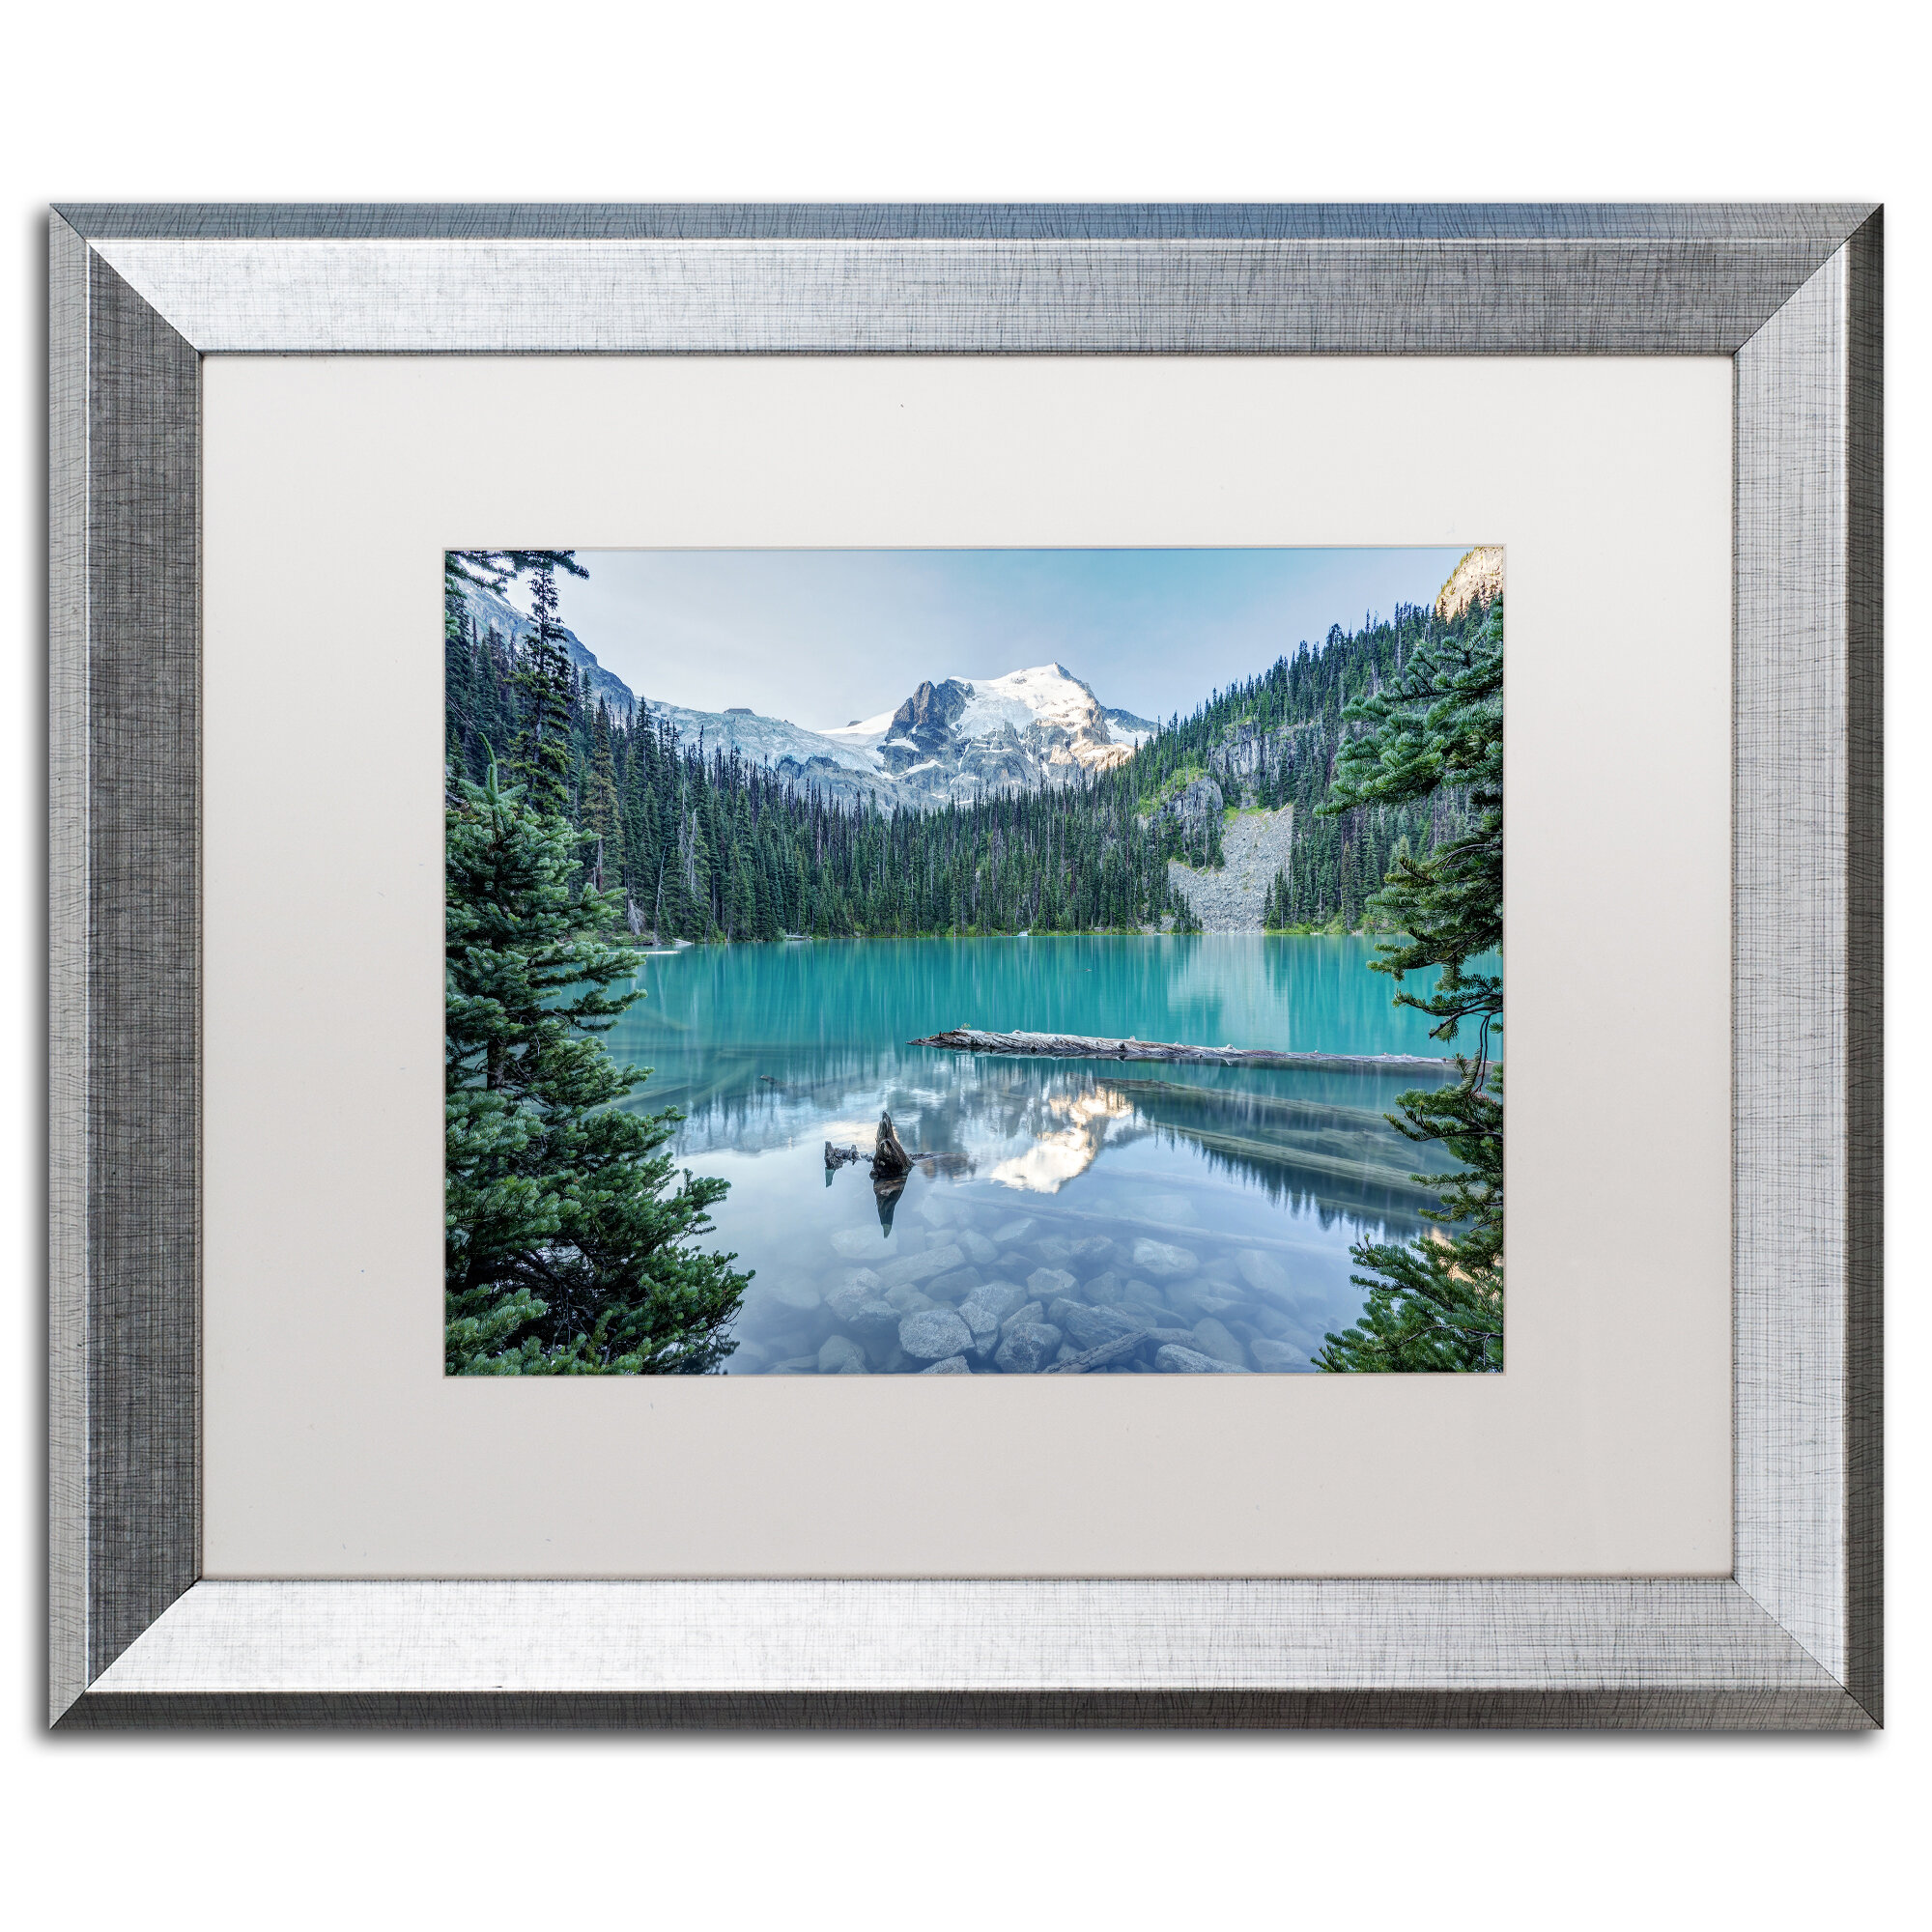 Trademark Art Natural Beautiful British Columbia By Pierre Leclerc Framed Photographic Print Wayfair